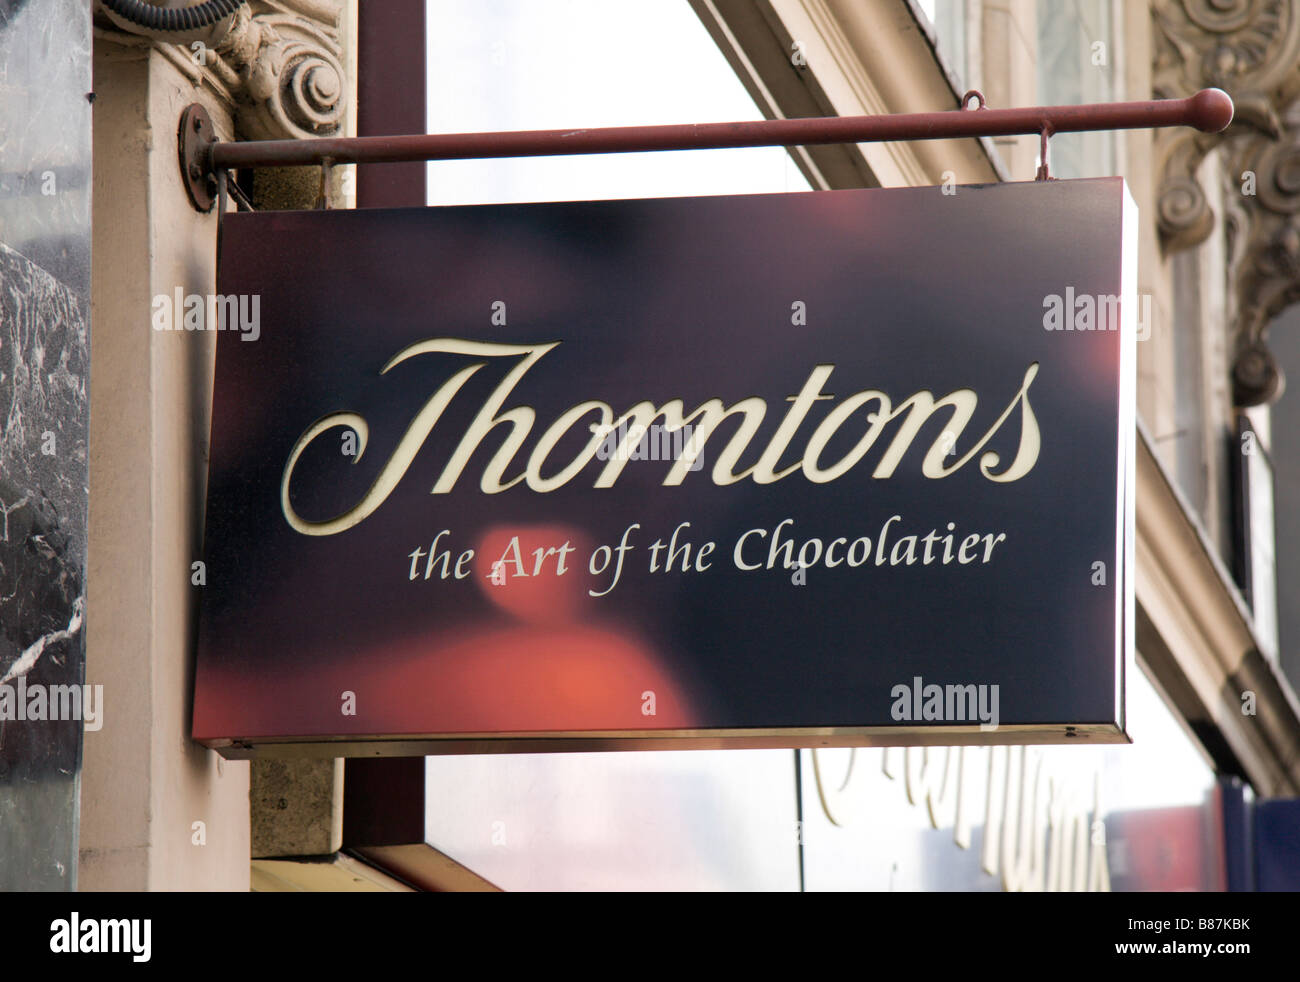 A shop sign above the Thorntons chocolate confectionery shop, Marylebone, London. Jan 2009 - Stock Image